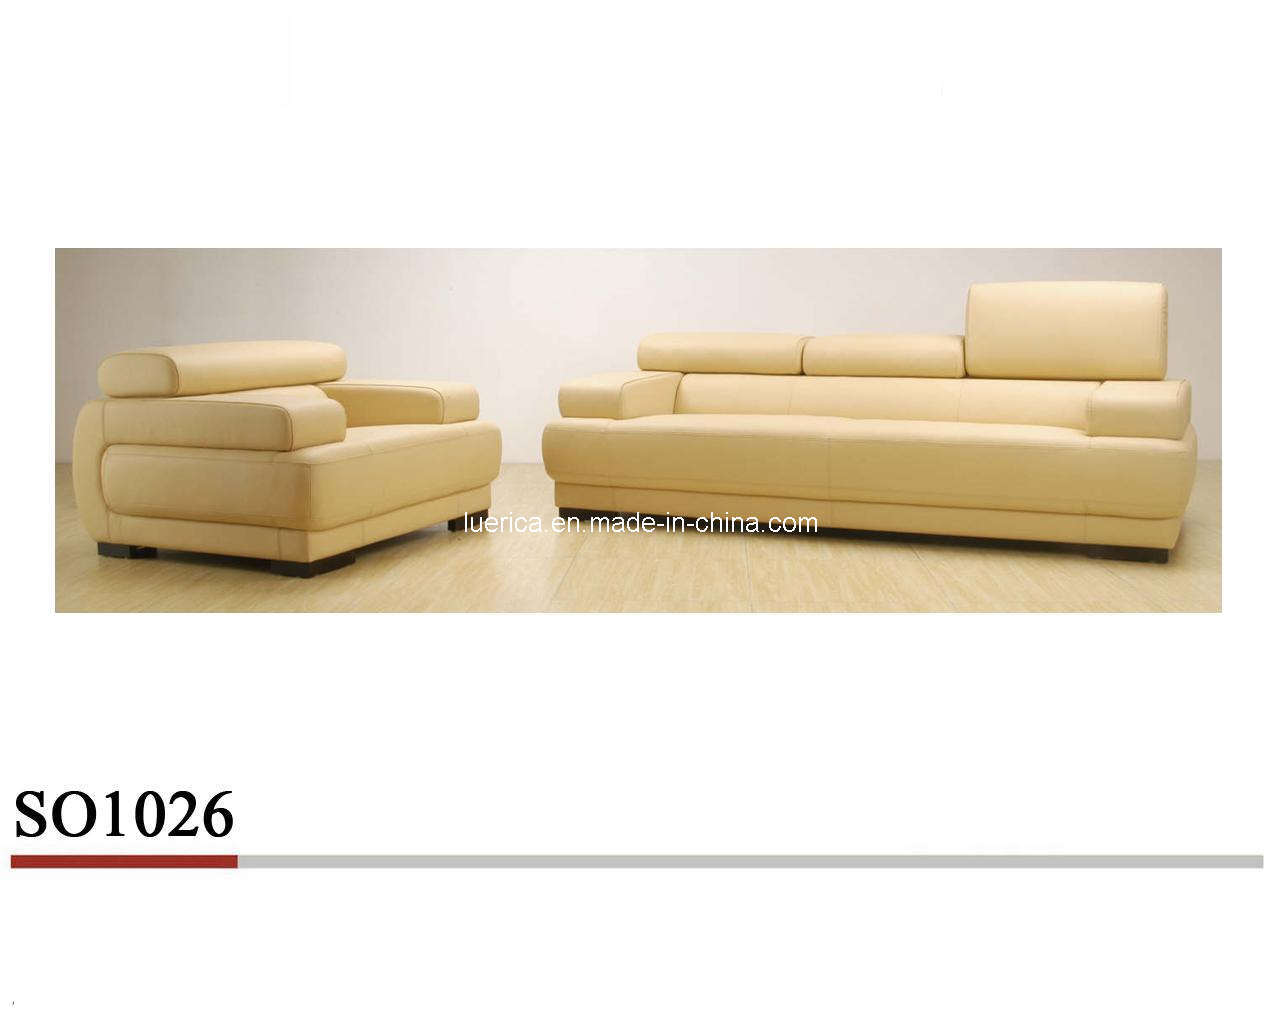 new model sofa china bed los angeles ca funtion leather style